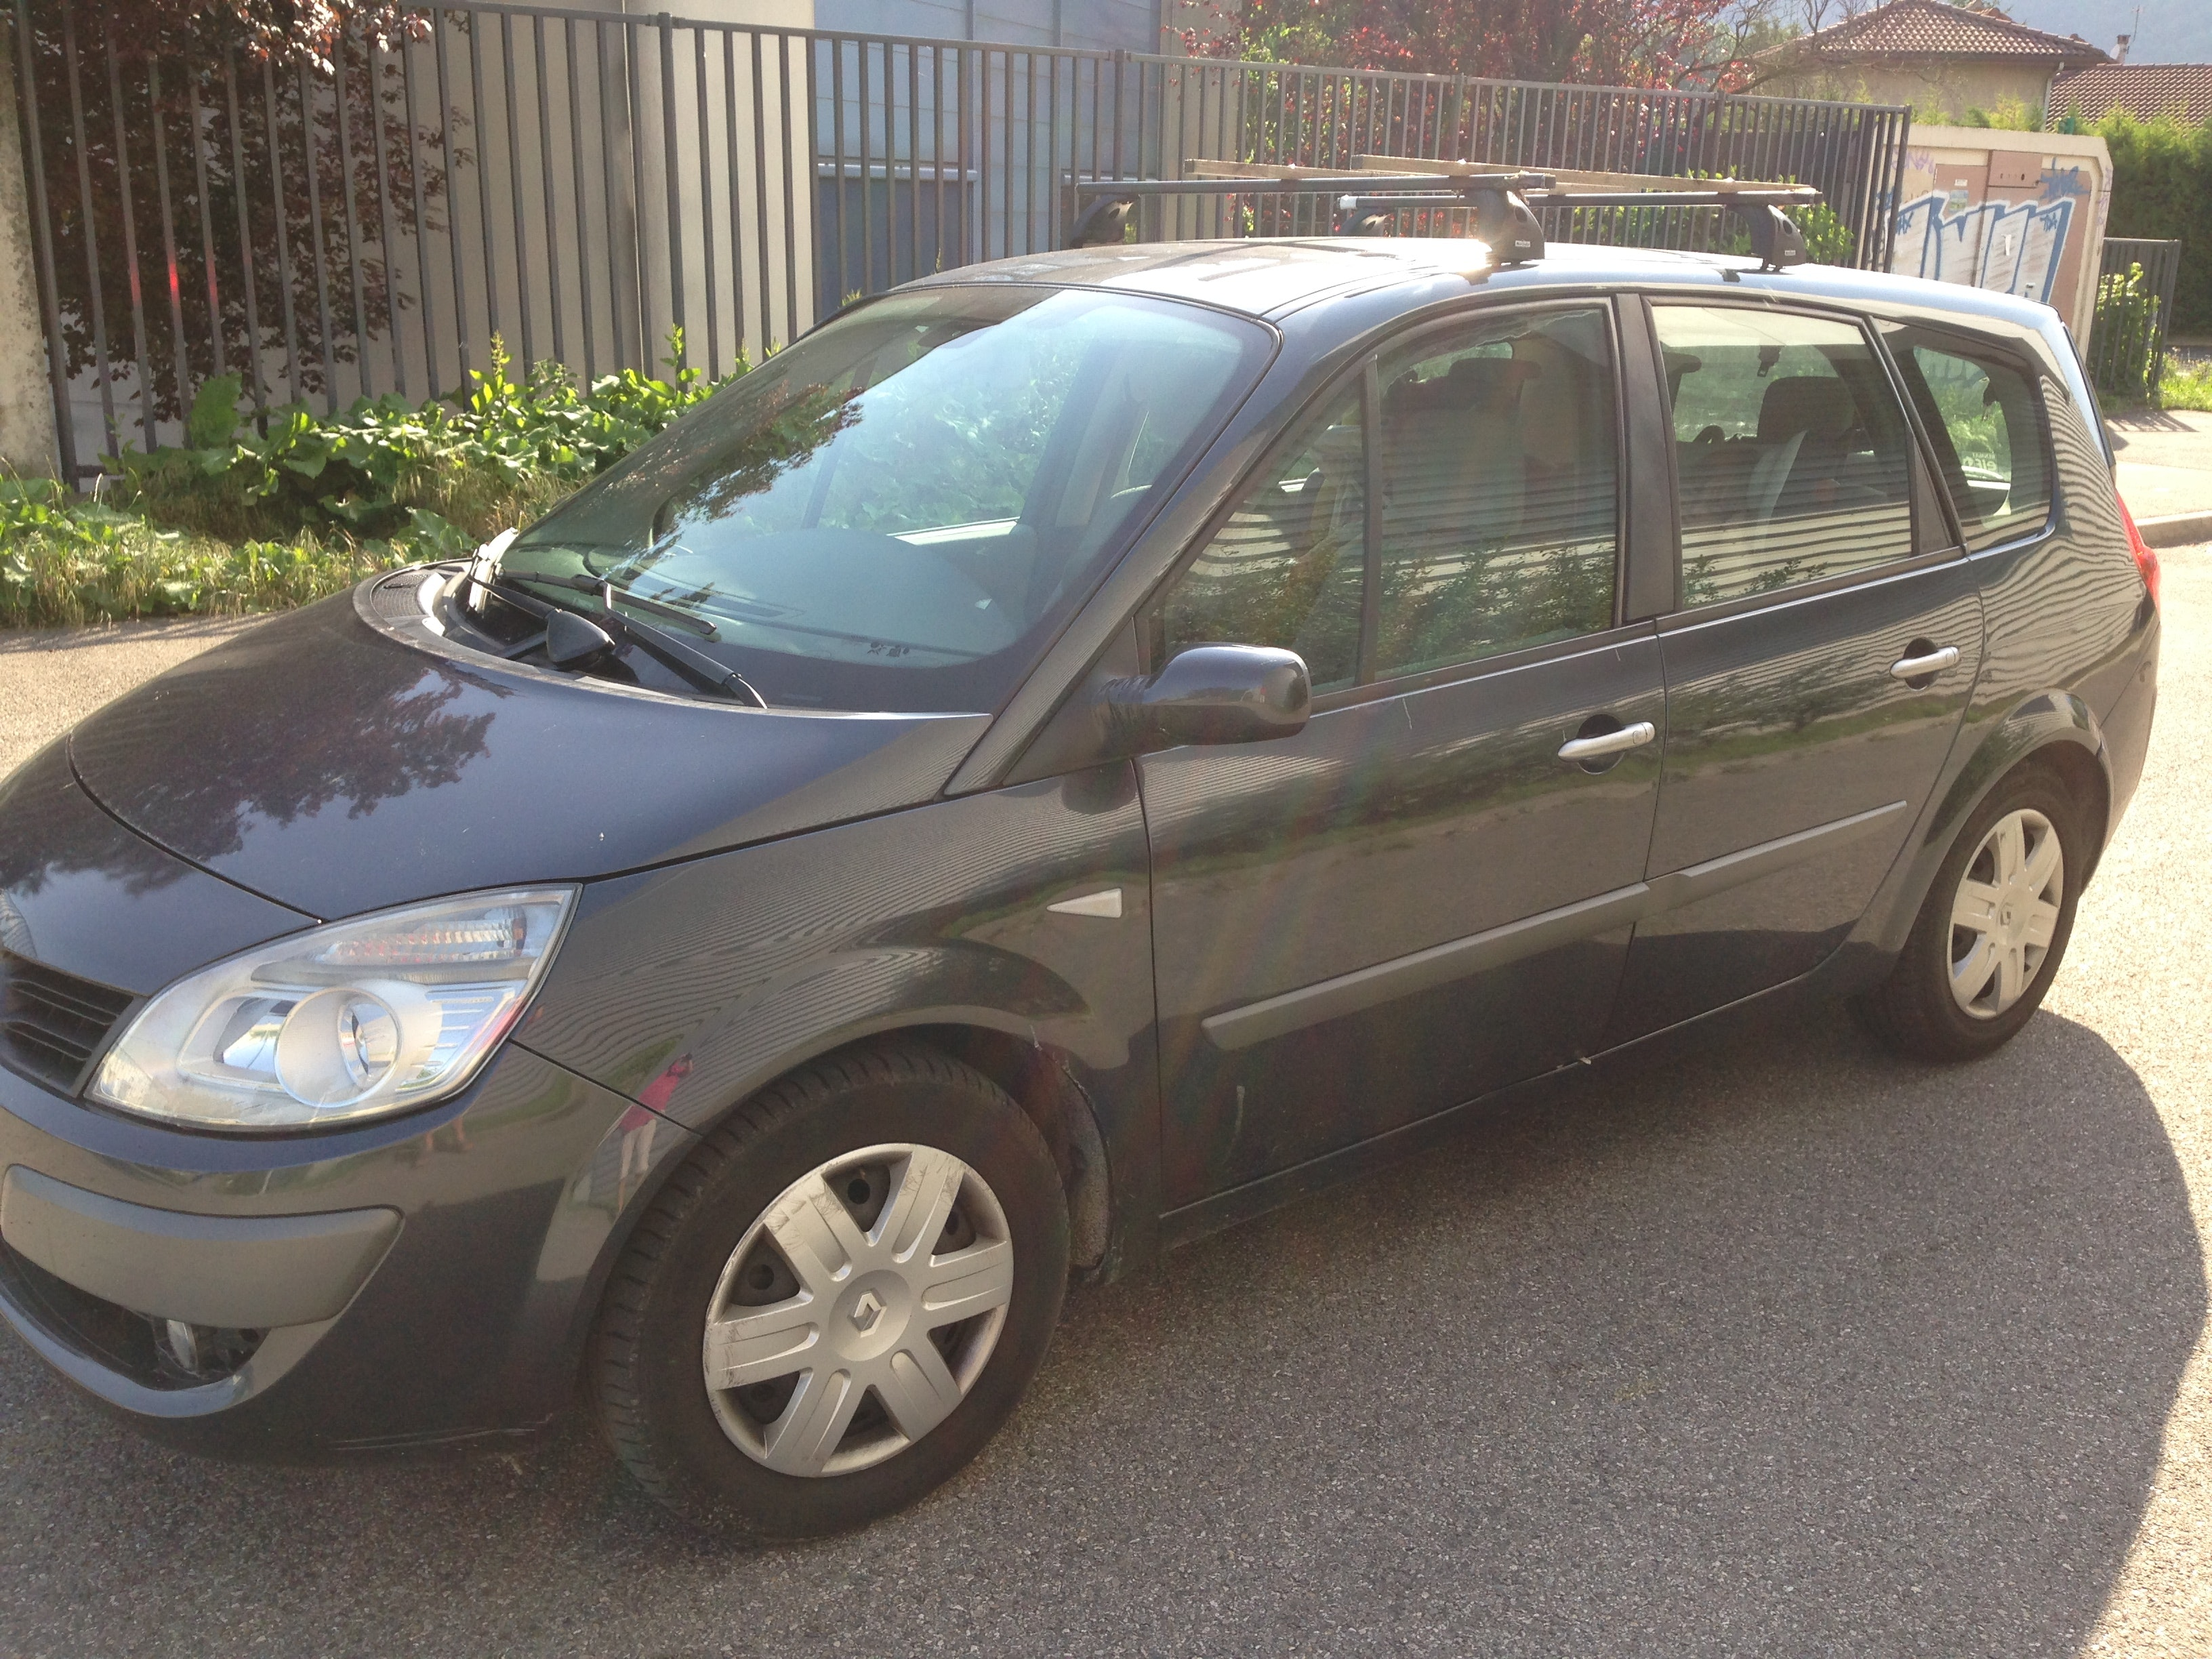 Renault GRAND SCENIC 7 PLACES 1,5 DCI 105CH, 2009, Diesel, 7 places